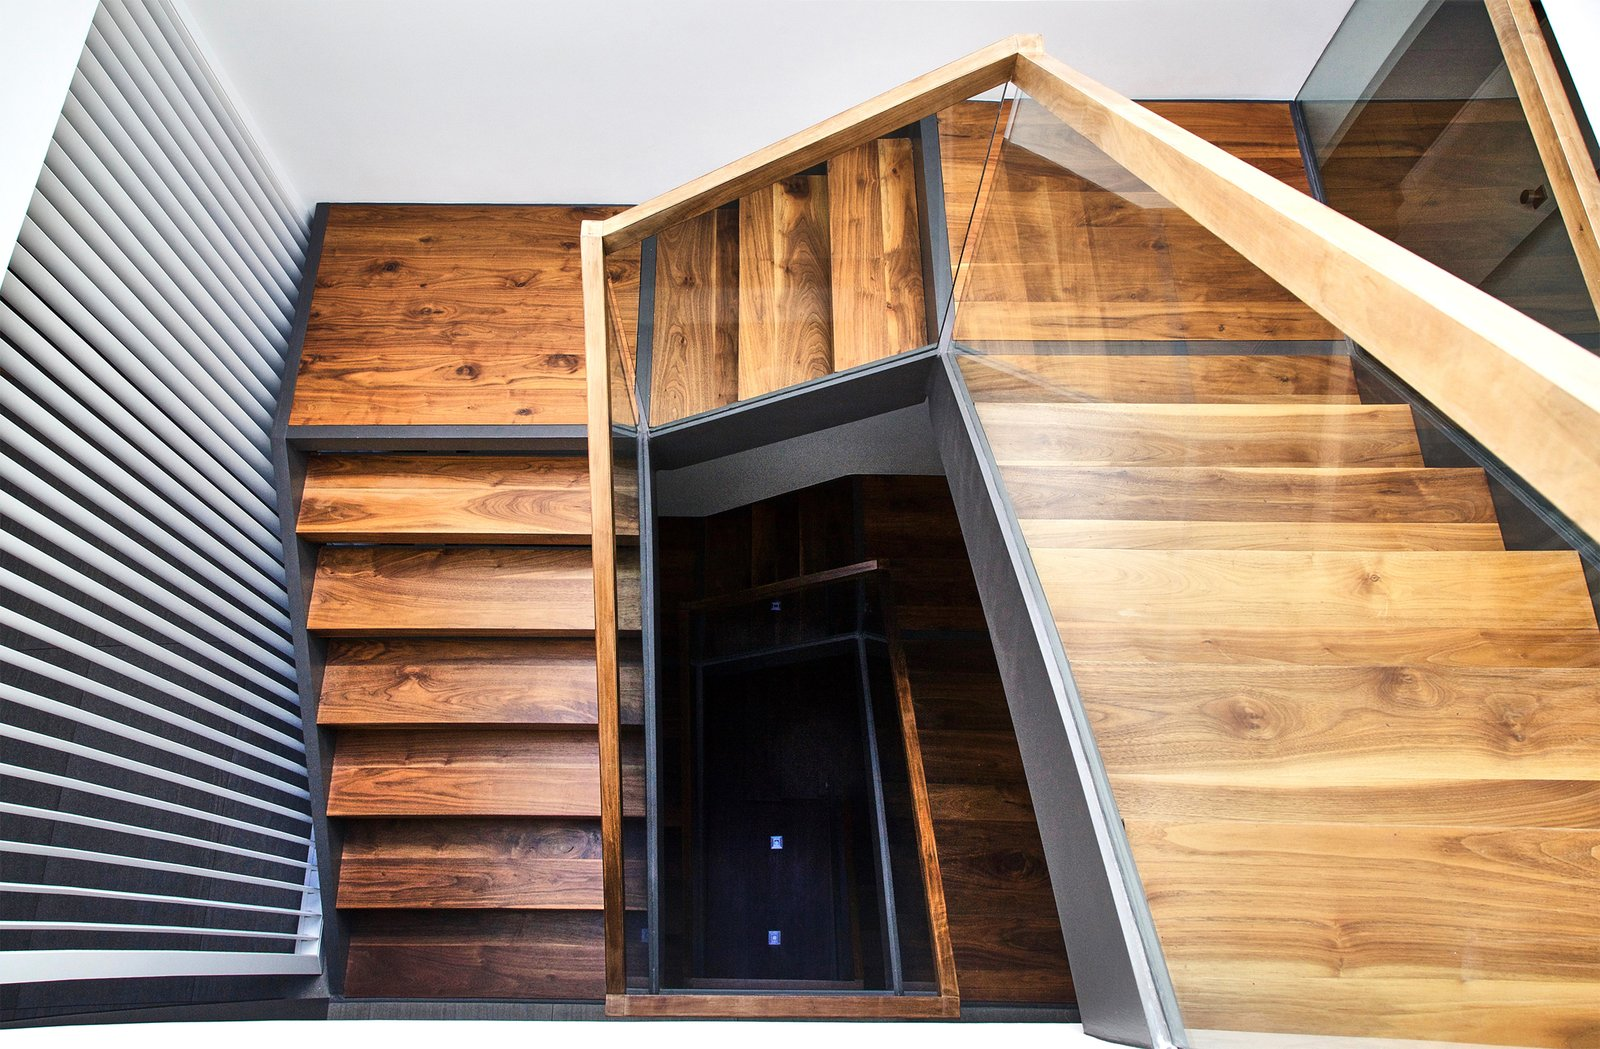 Walnut and Steel stair connecting all floors Tagged: Staircase, Wood Railing, Wood Tread, and Glass Railing.  Lyon Residence by Diego Pacheco Design Practice